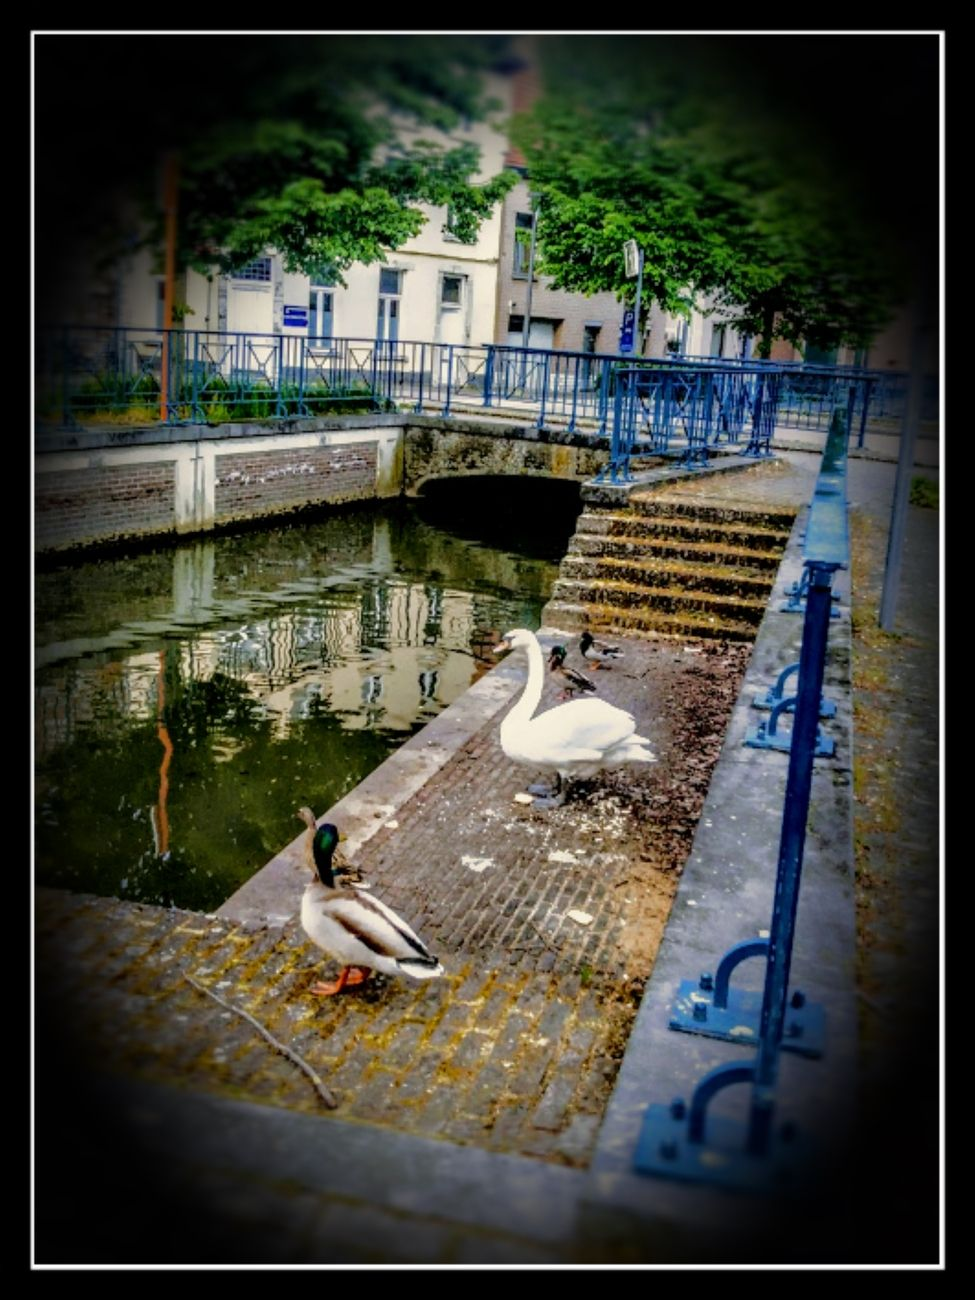 In Tienen a small river runs through the city And this brings beautiful scenes, such as the Swan and the ducks here Sincerely Theo-Herbots-Photography https://groetenuittienen.blog/